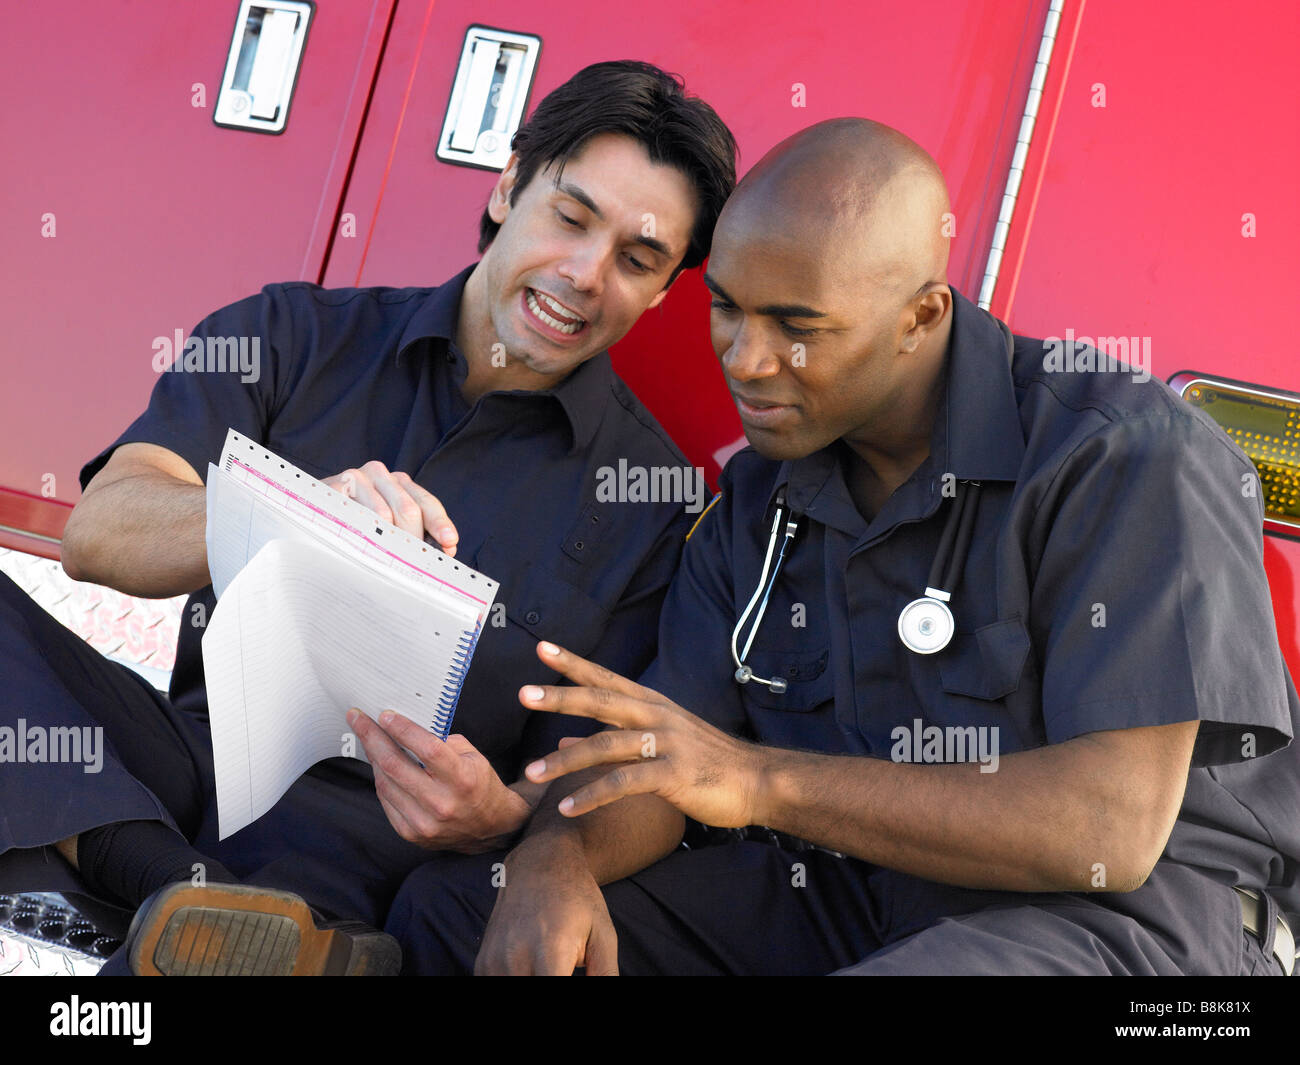 Two paramedics cheerfully doing paperwork, sitting by their ambulance - Stock Image